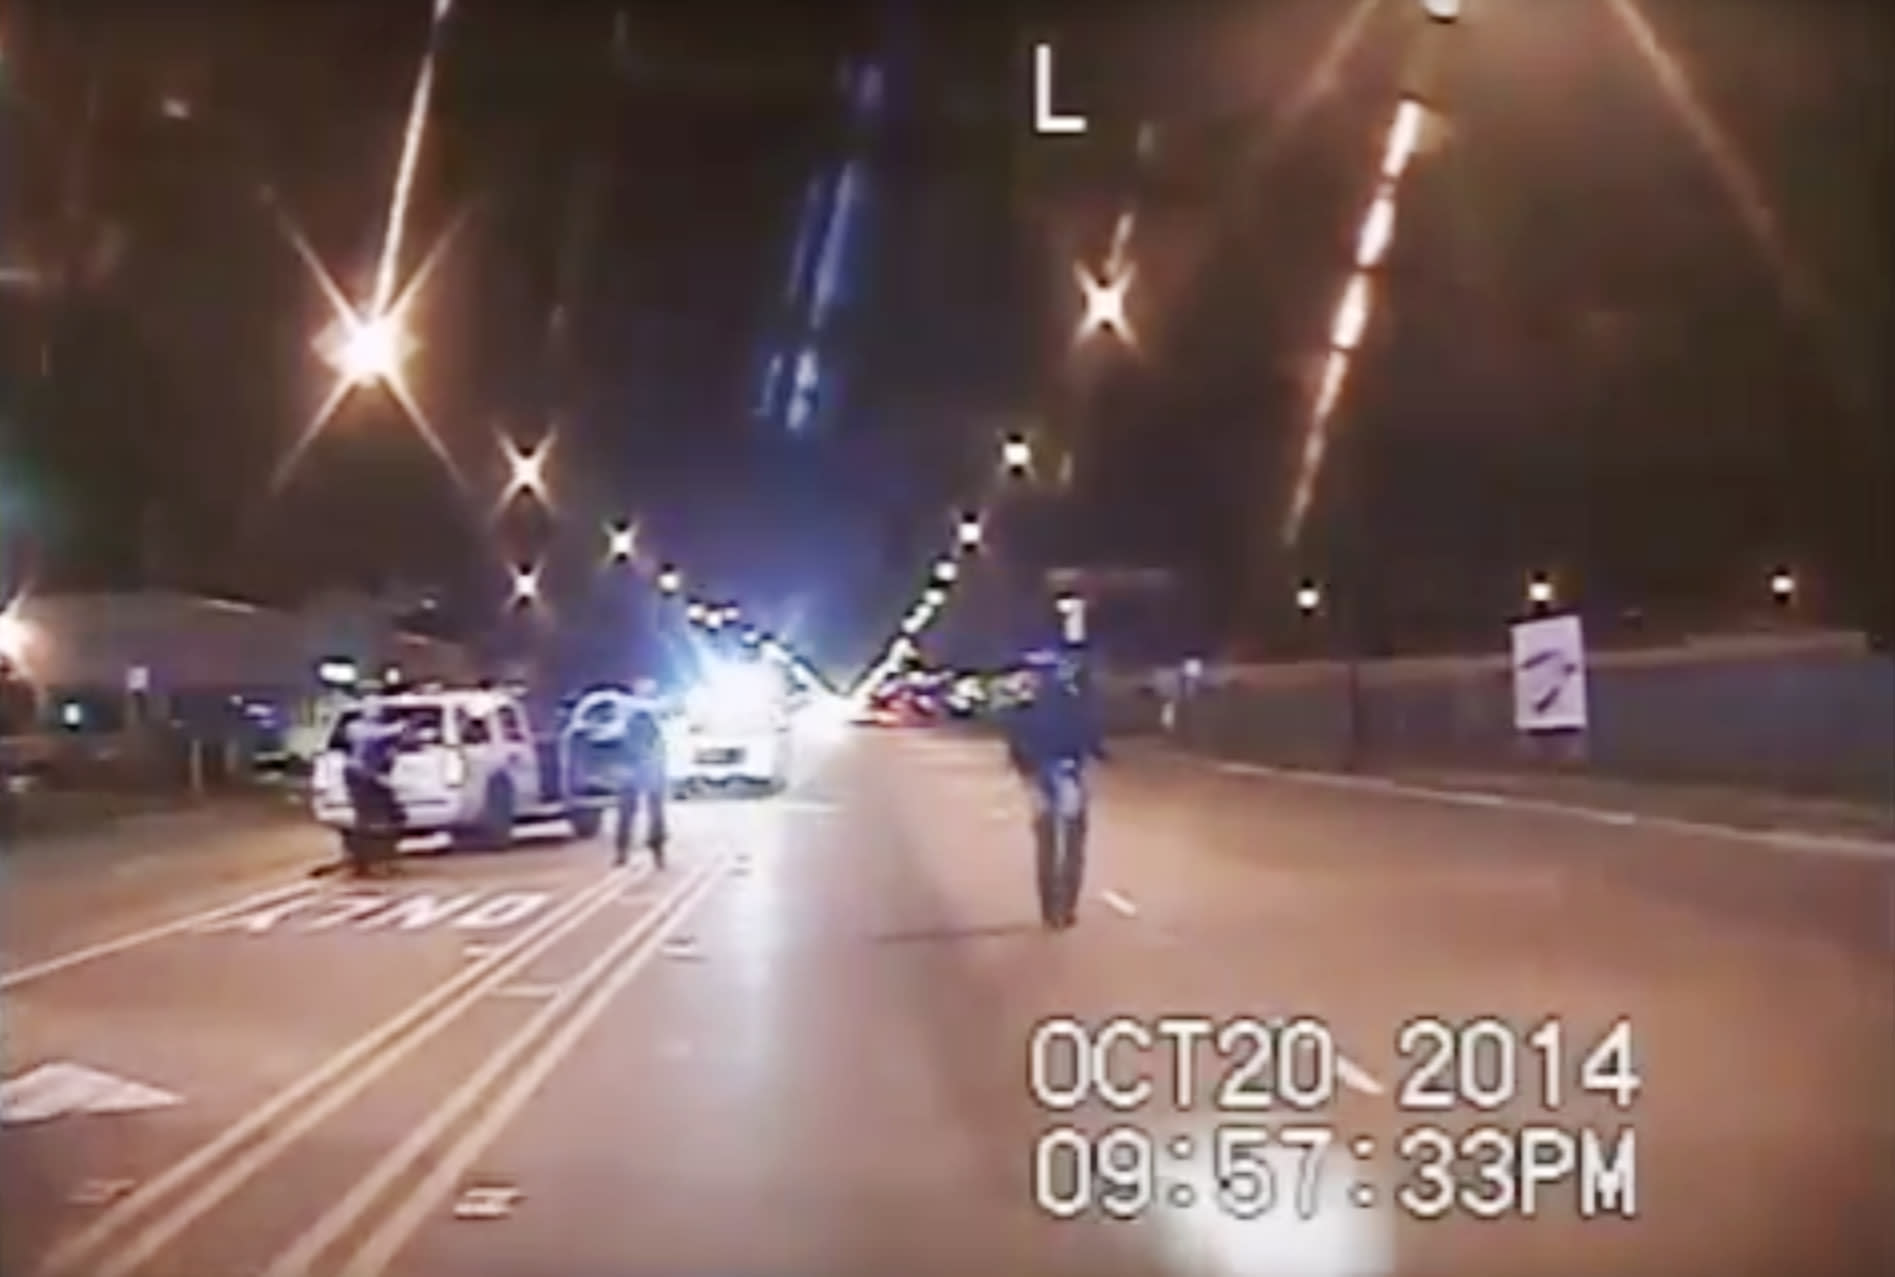 Chicago awaits more protests over police shooting